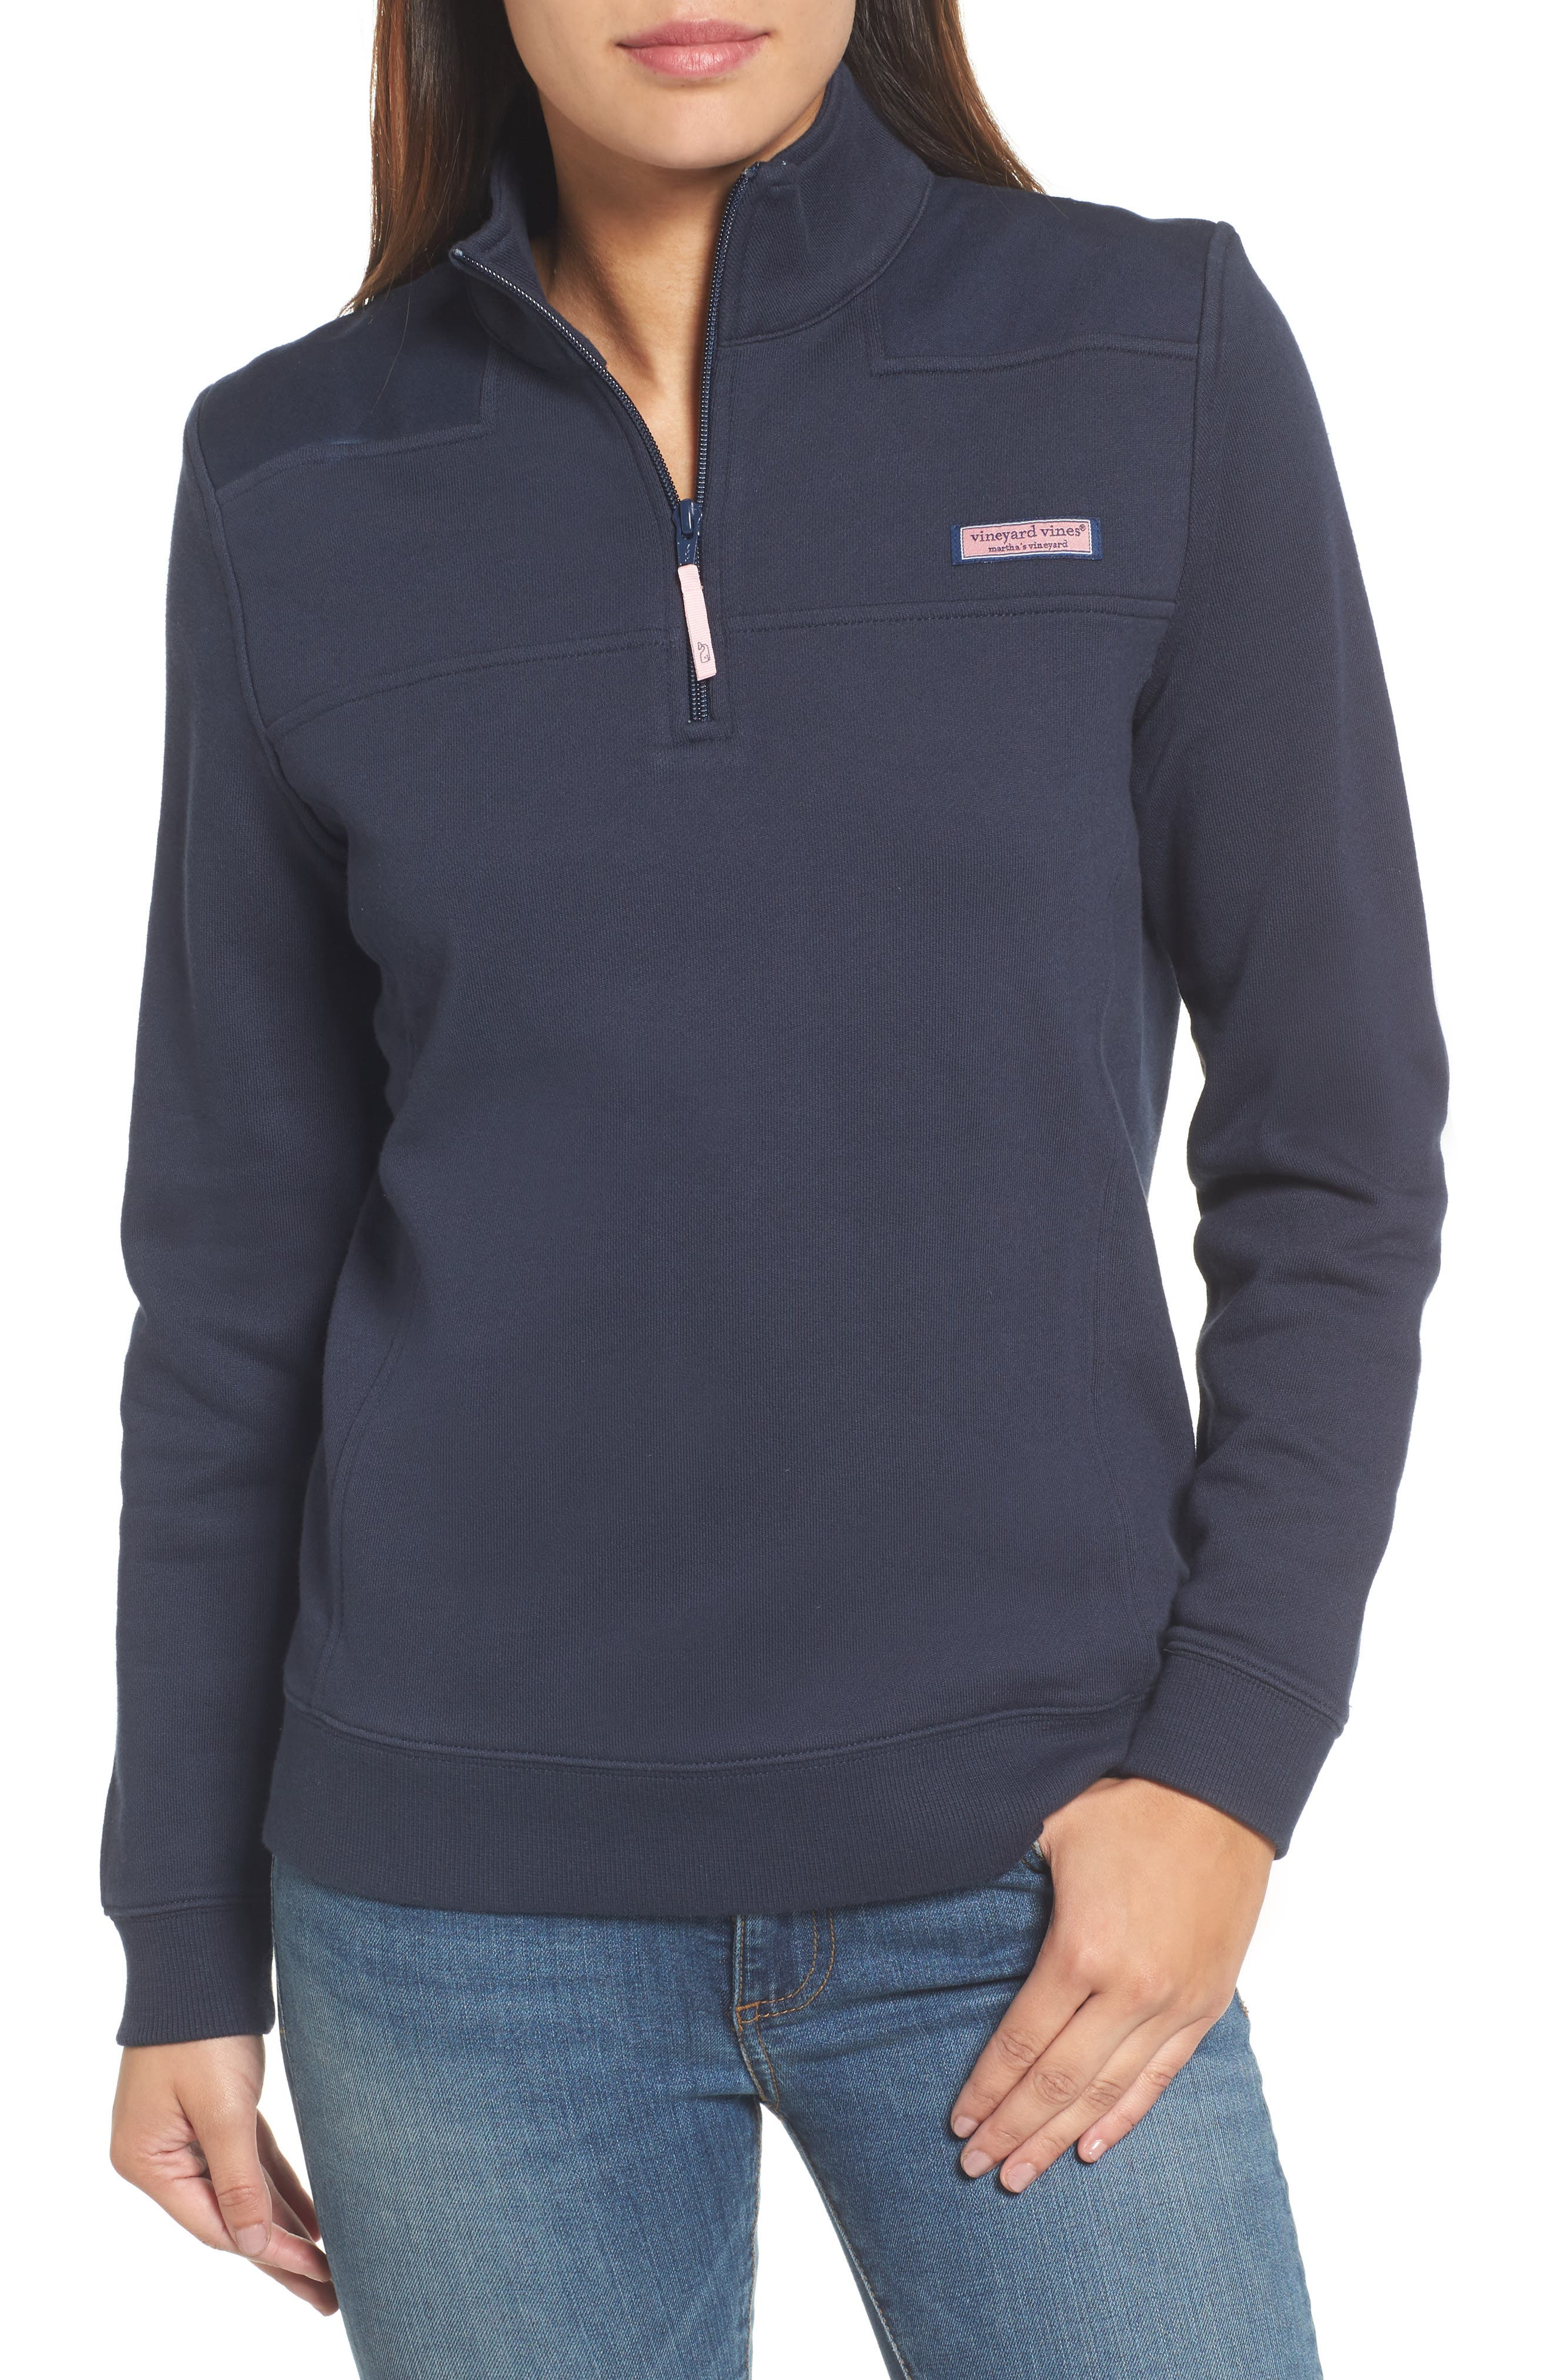 Main Image - vineyard vines Shep Half Zip French Terry Pullover